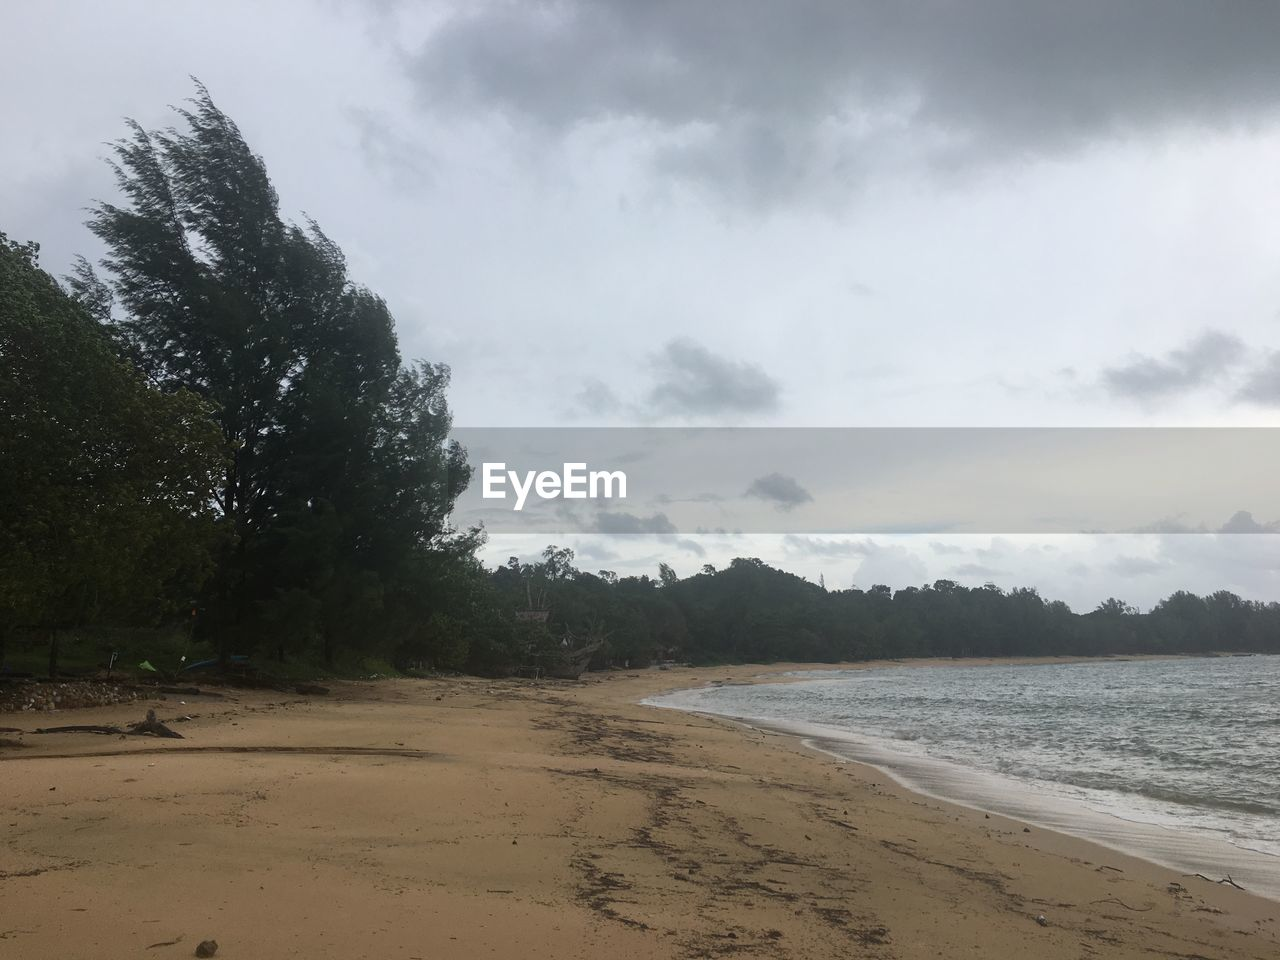 sand, beach, sky, nature, scenics, water, sea, beauty in nature, cloud - sky, tranquility, no people, tree, outdoors, day